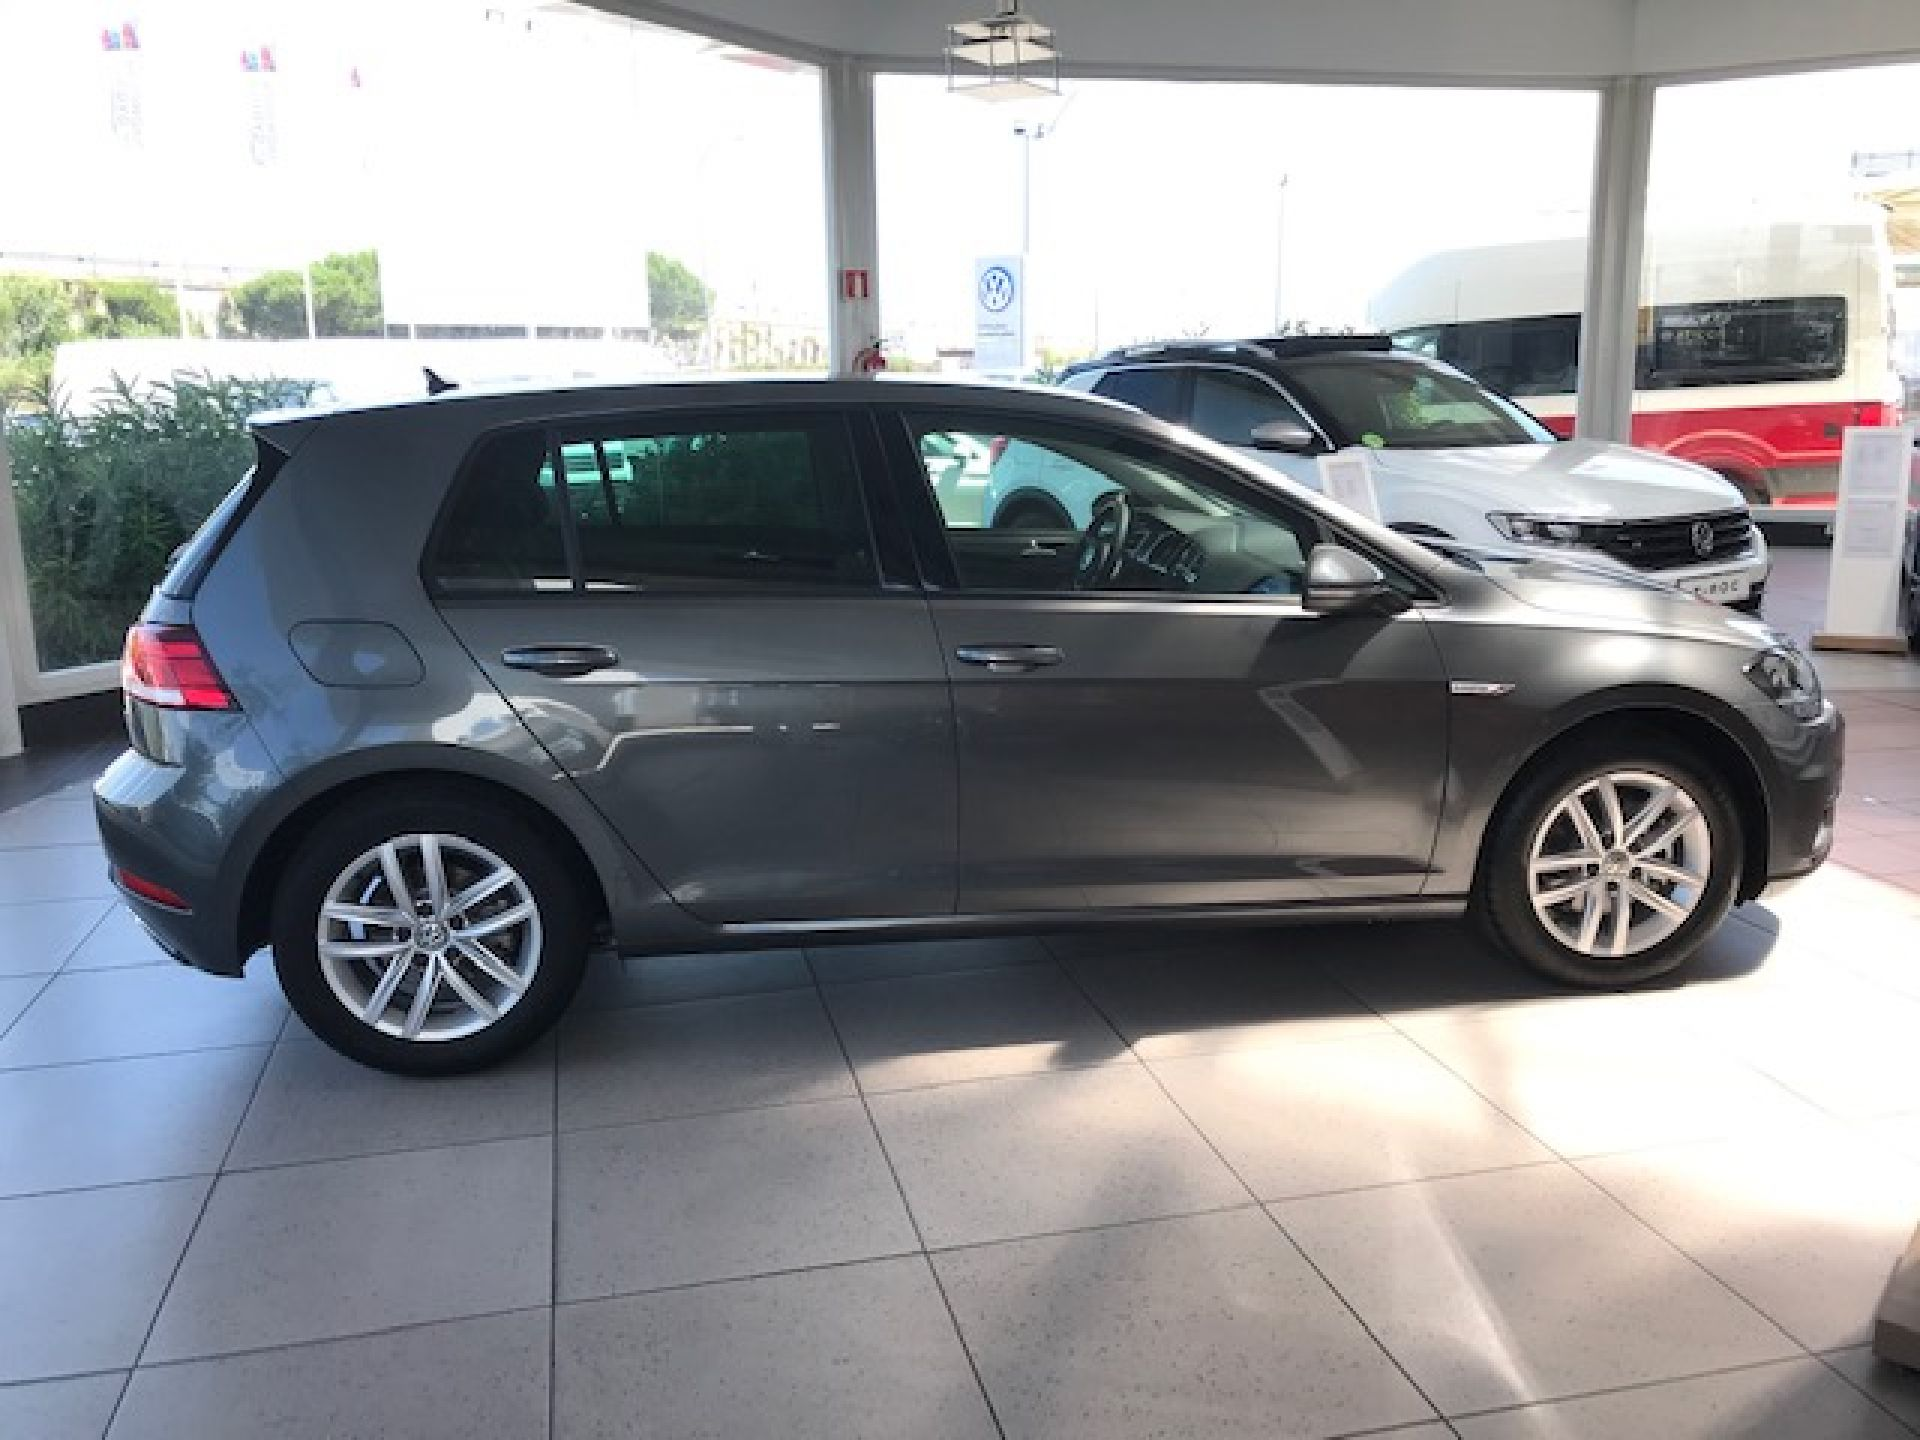 Volkswagen Golf Business 1.5 TSI EVO 96kW (130CV) nuevo Madrid